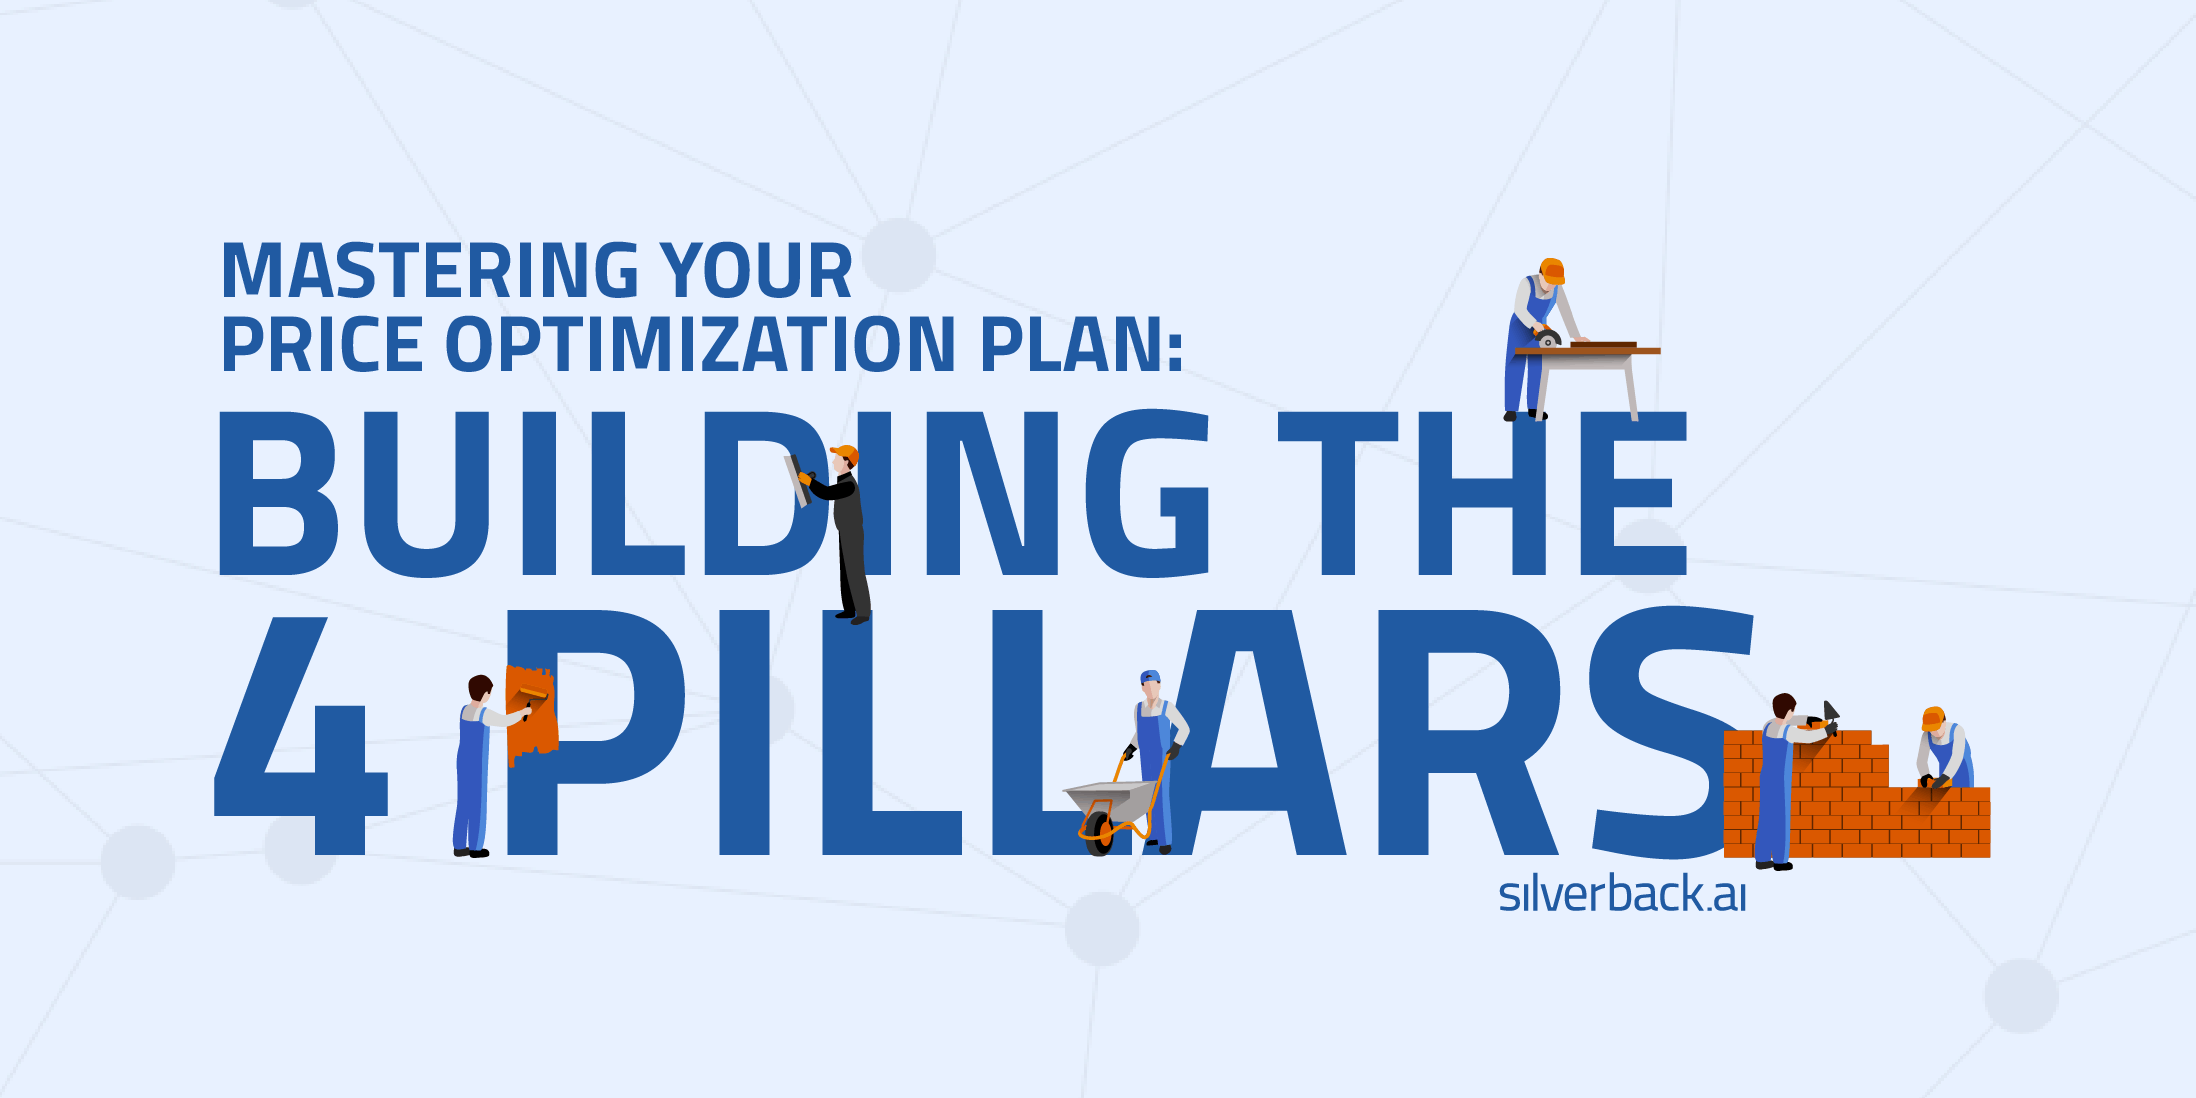 successful price optimization plan: building the 4 pillars